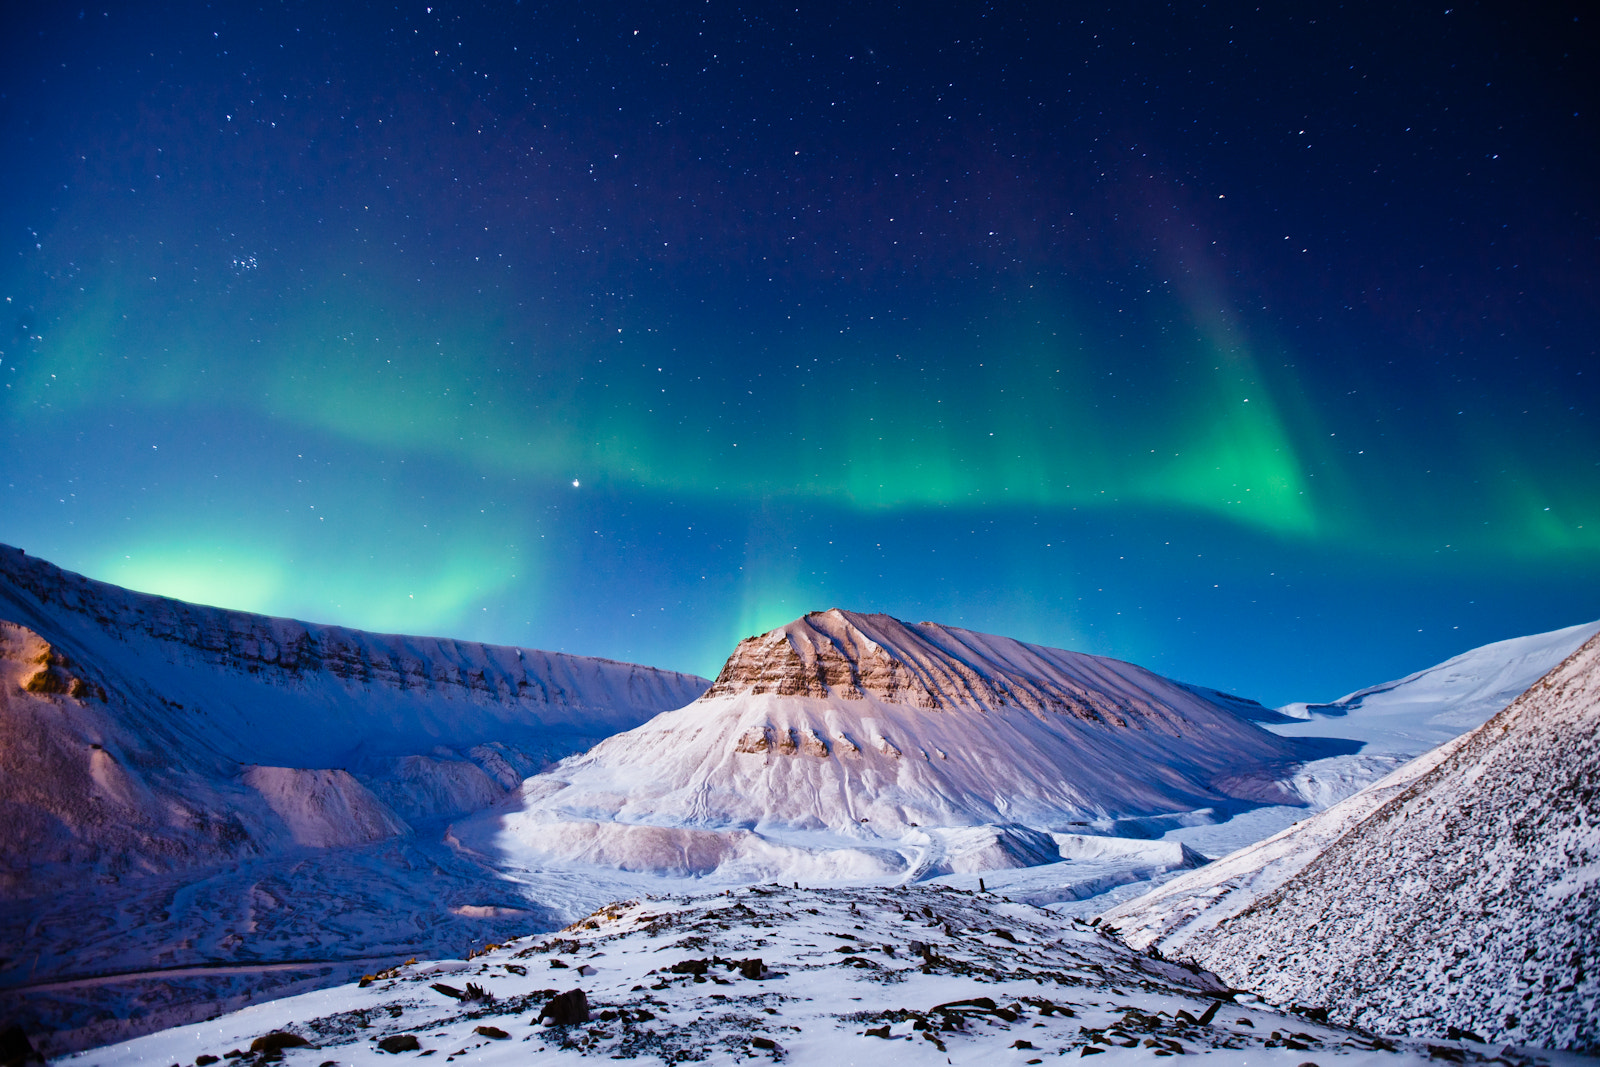 Photograph Polar lights over Svalbard by Max Edin on 500px